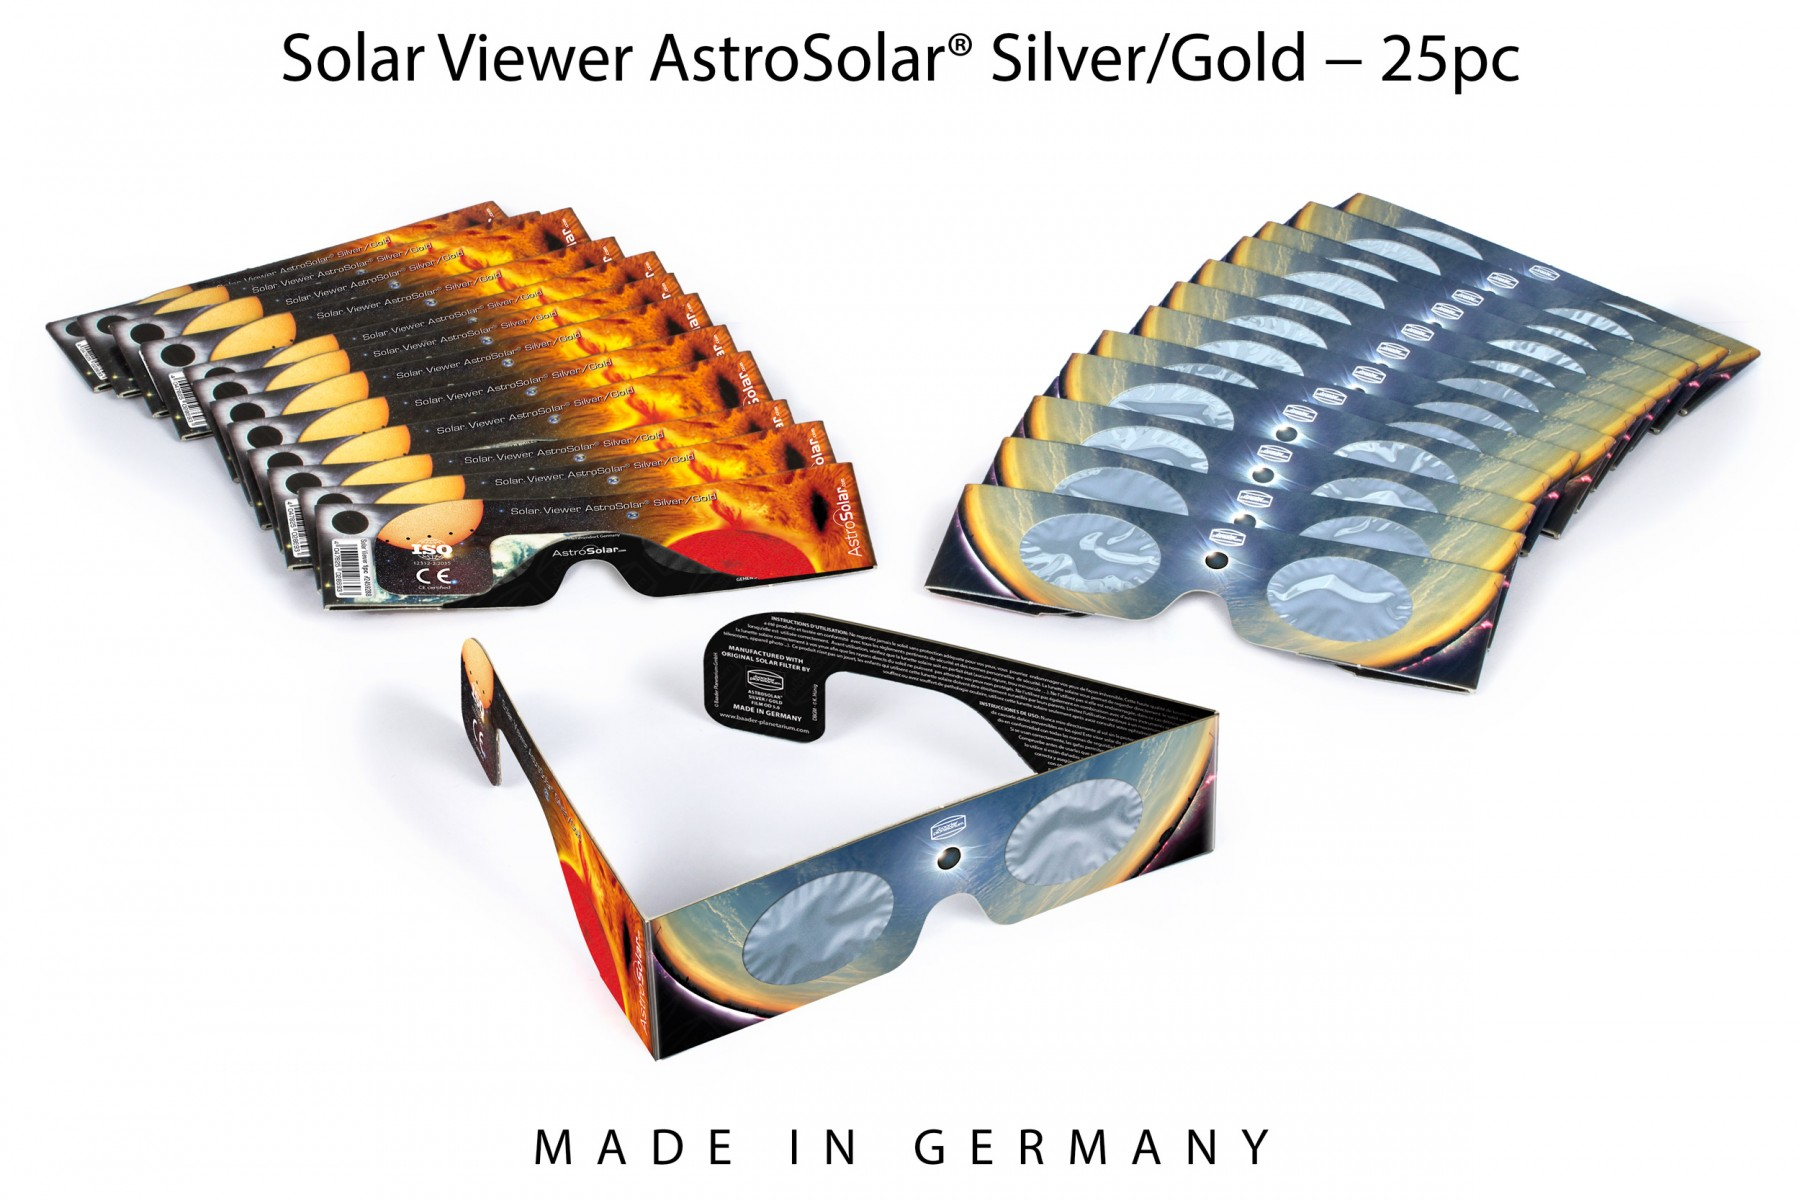 optik fachhandel in stuttgart baader solar viewer silver gold 25 st online kaufen bei. Black Bedroom Furniture Sets. Home Design Ideas